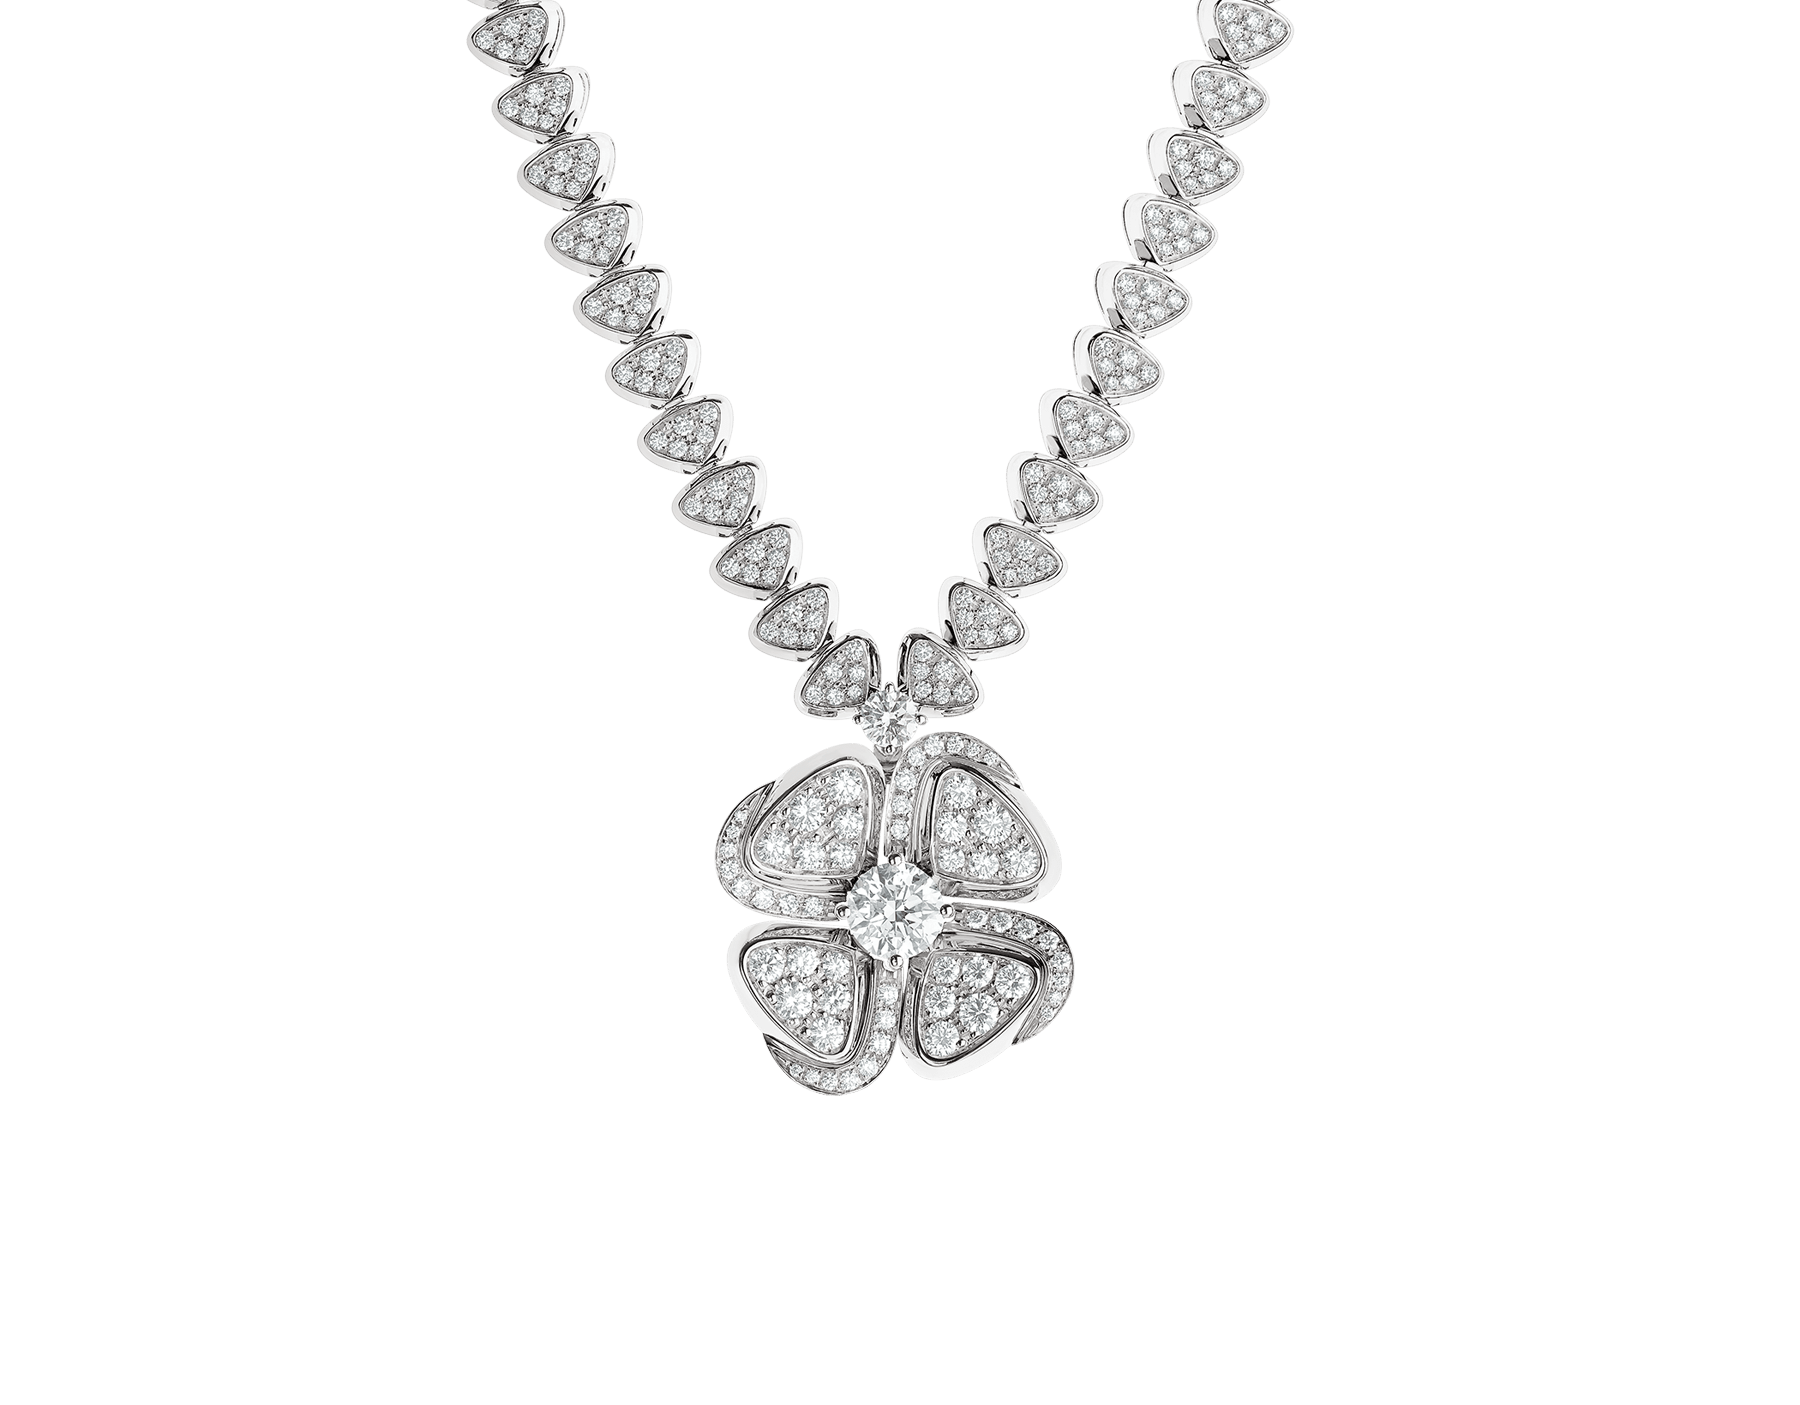 Fiorever 18 kt white gold necklace set with a central diamond (0.70 ct) and pavé diamonds 357377 image 1